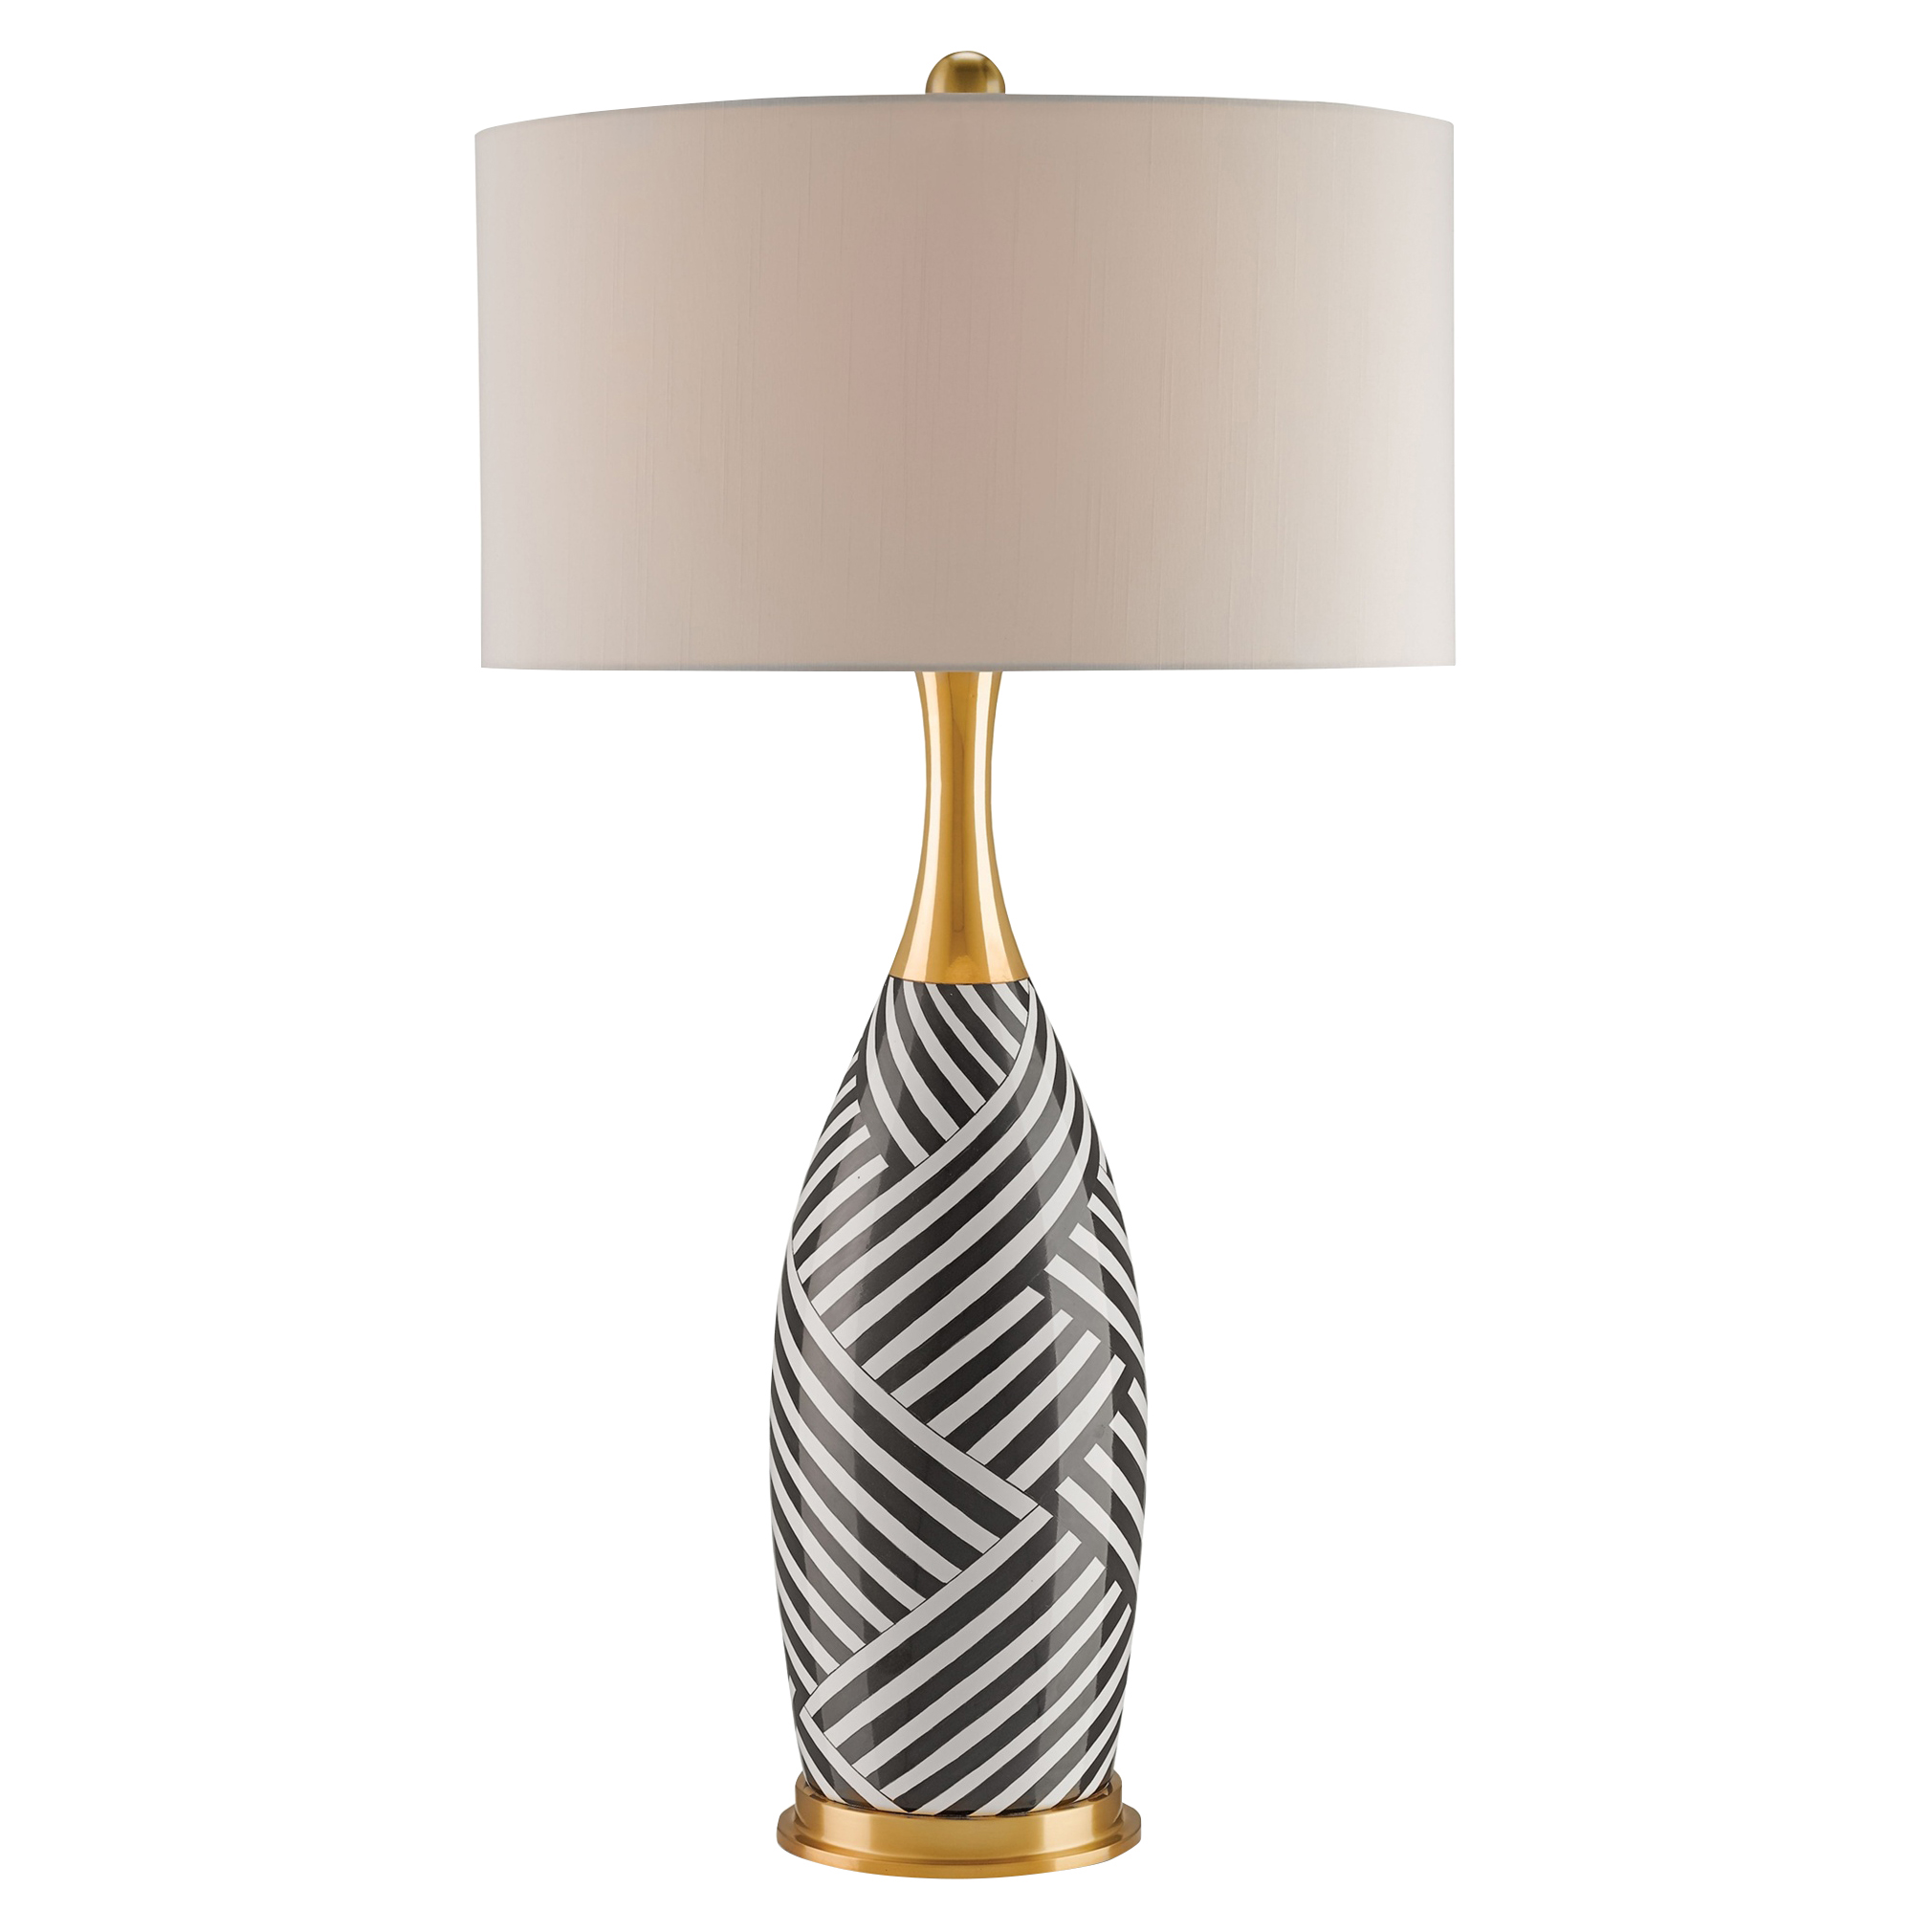 Laveda Modern Black White Weave Gold Table Lamp